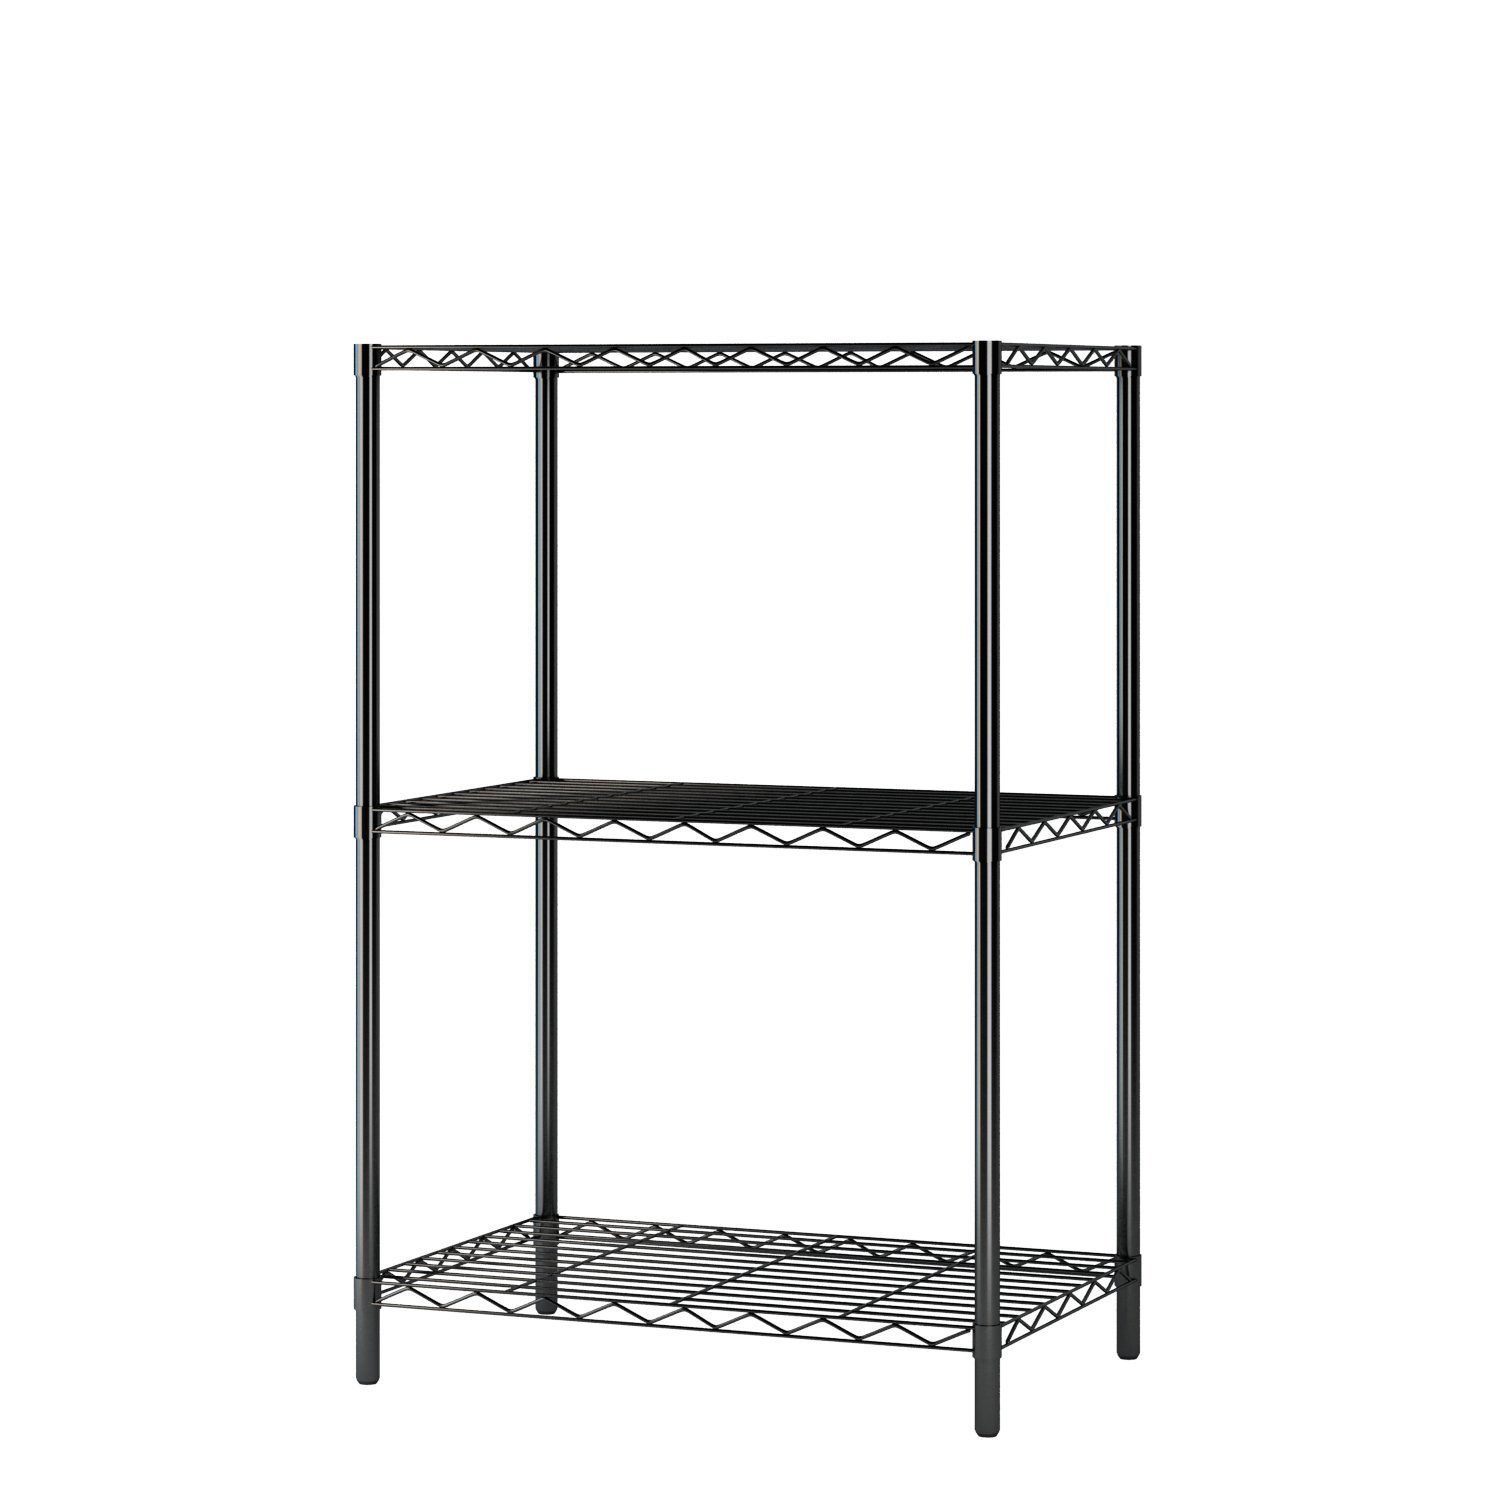 Cheap Metal Shelving, find Metal Shelving deals on line at Alibaba.com